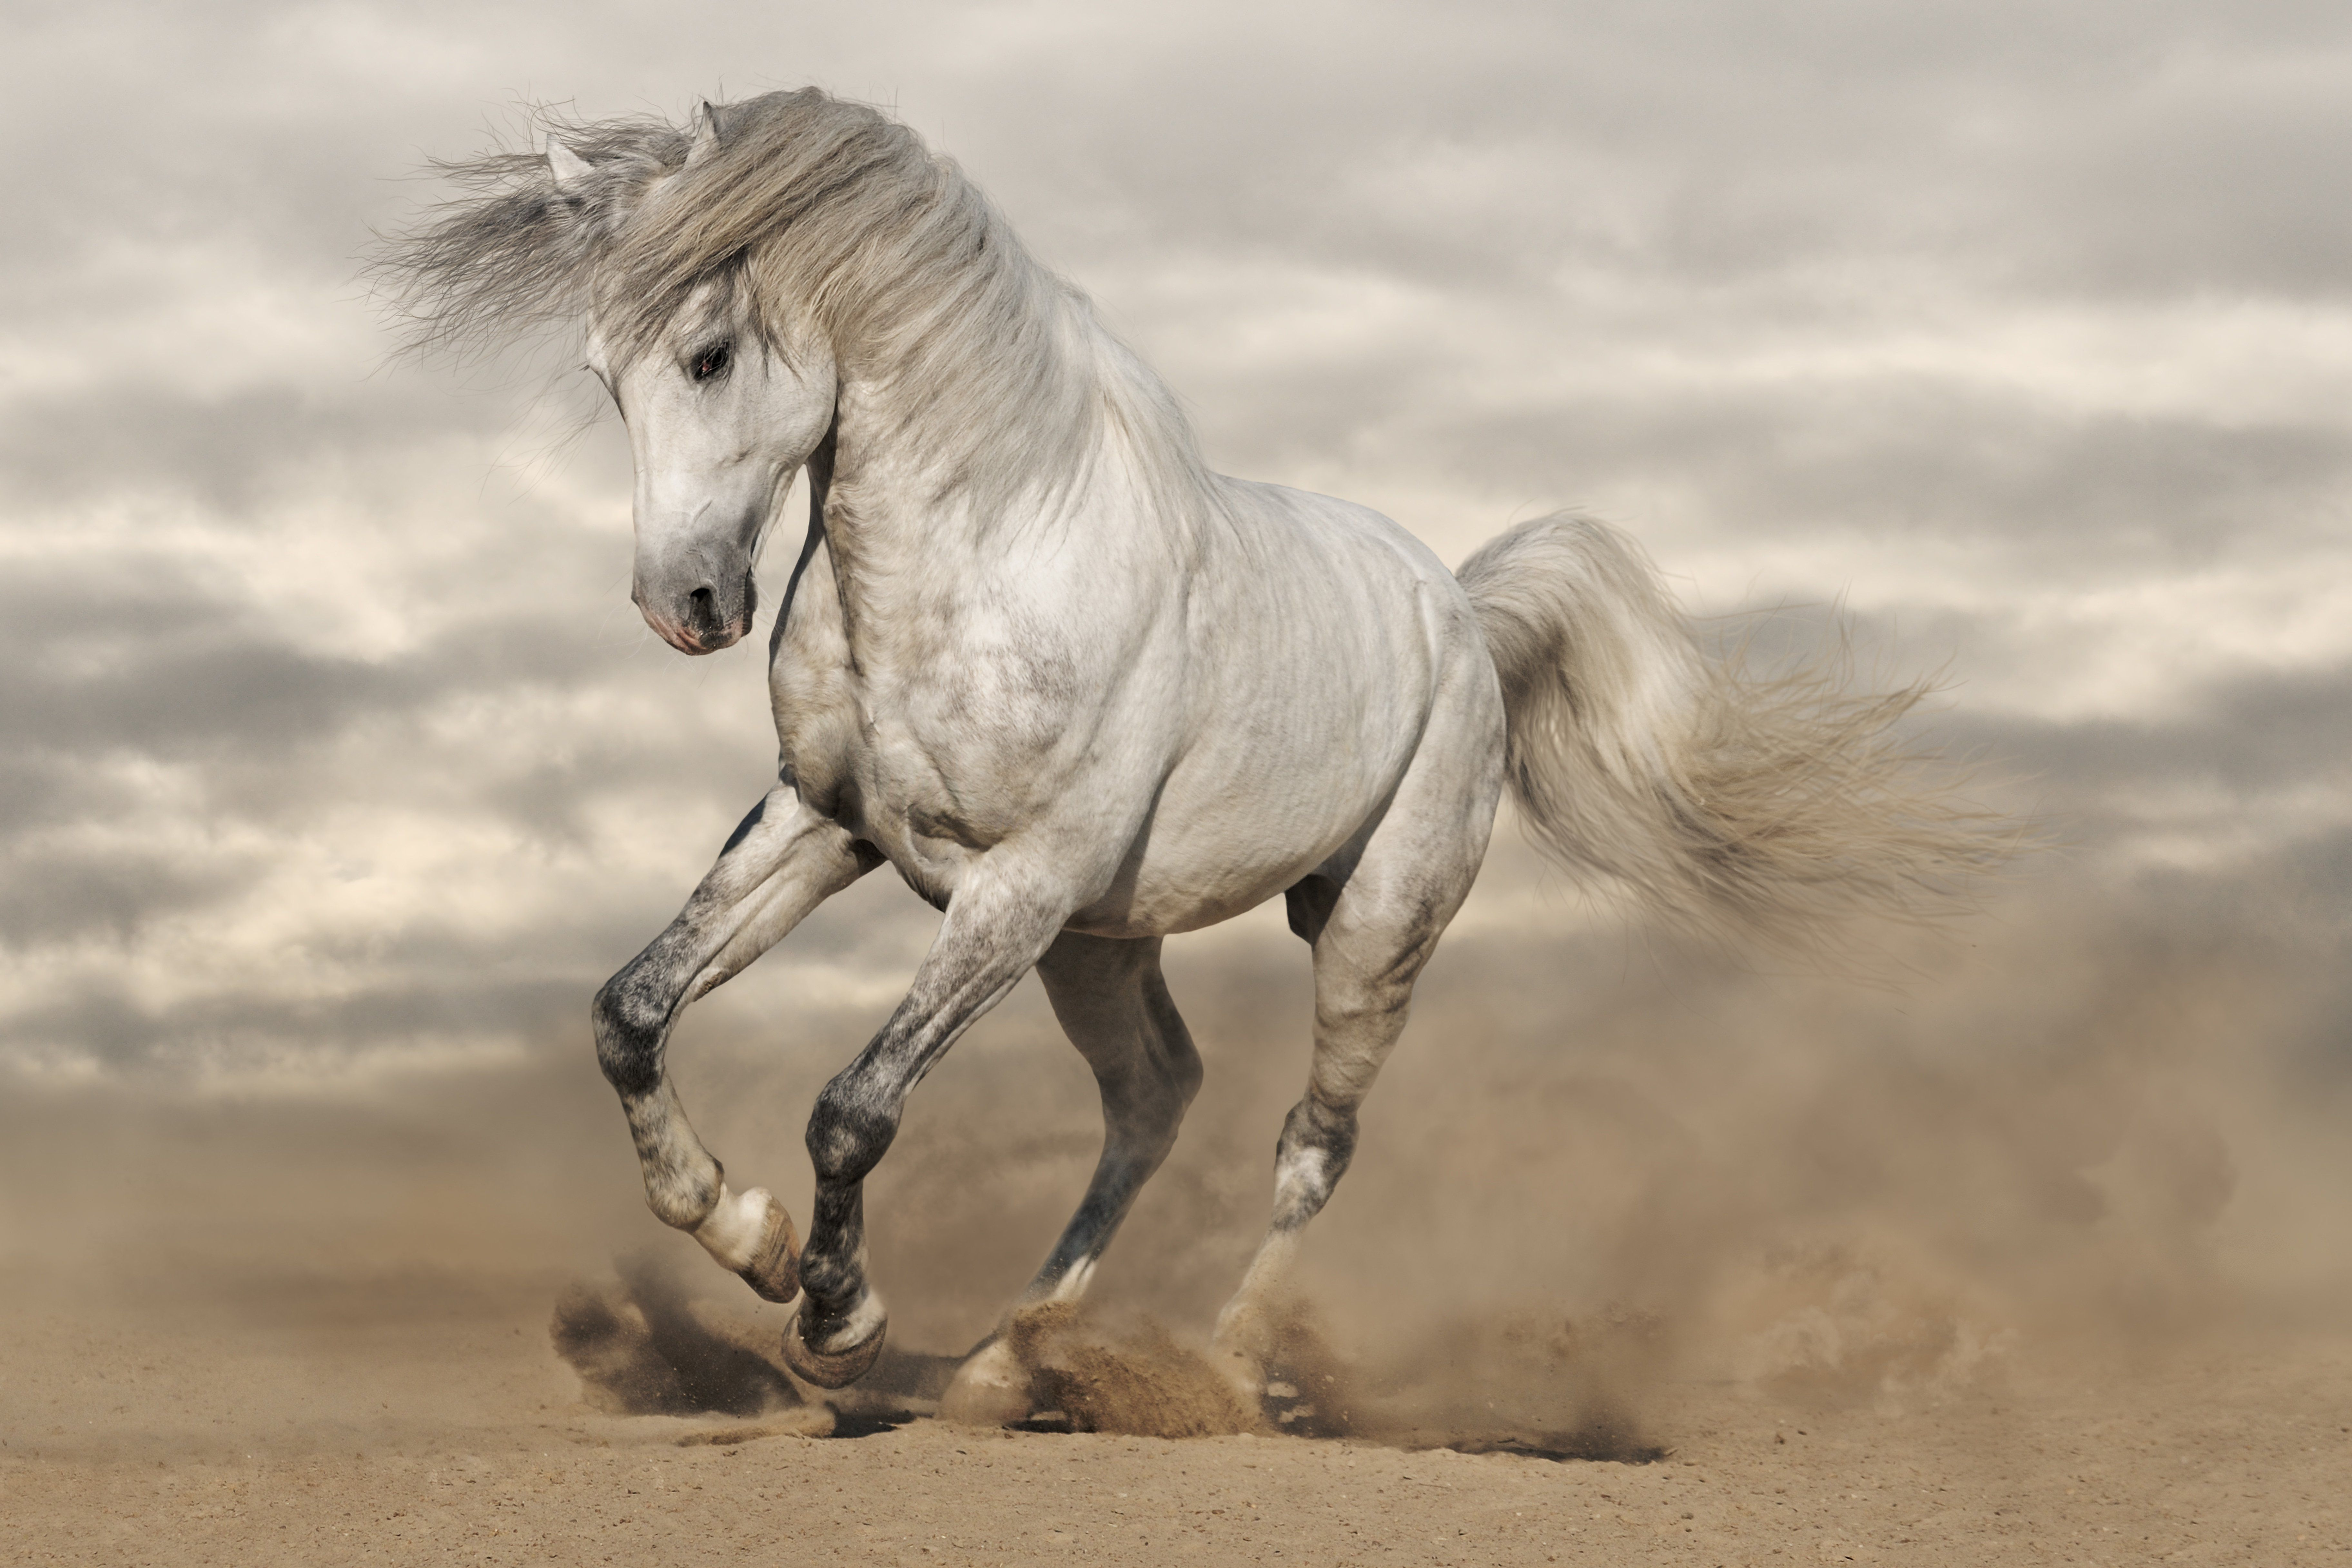 Download Wallpaper Horse Ipod Touch - 6d4b9b9a3772028c1d9e6c7fb04fd021  Gallery_53276.jpg